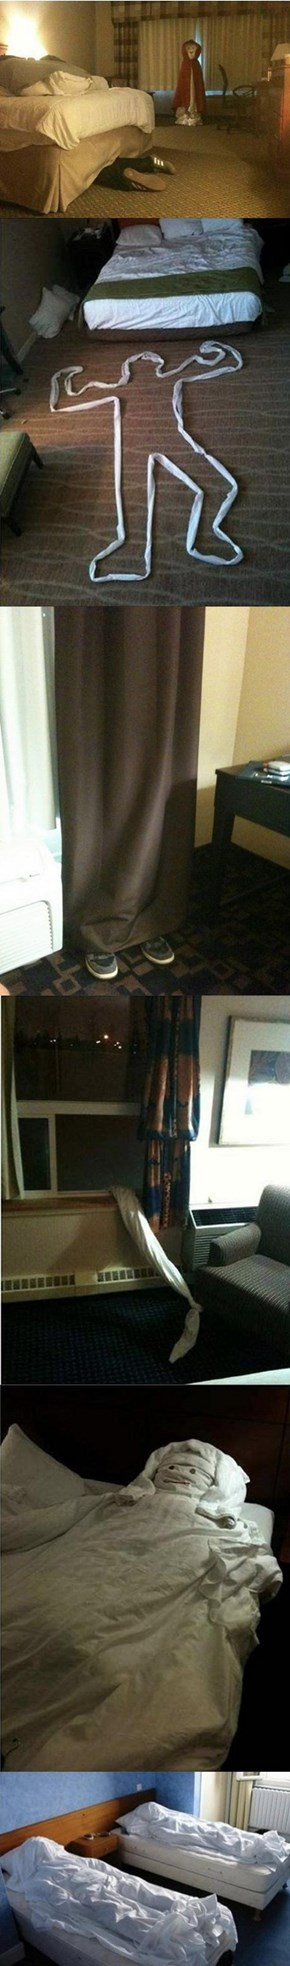 Hotel Room Pranks to Leave for the Maids